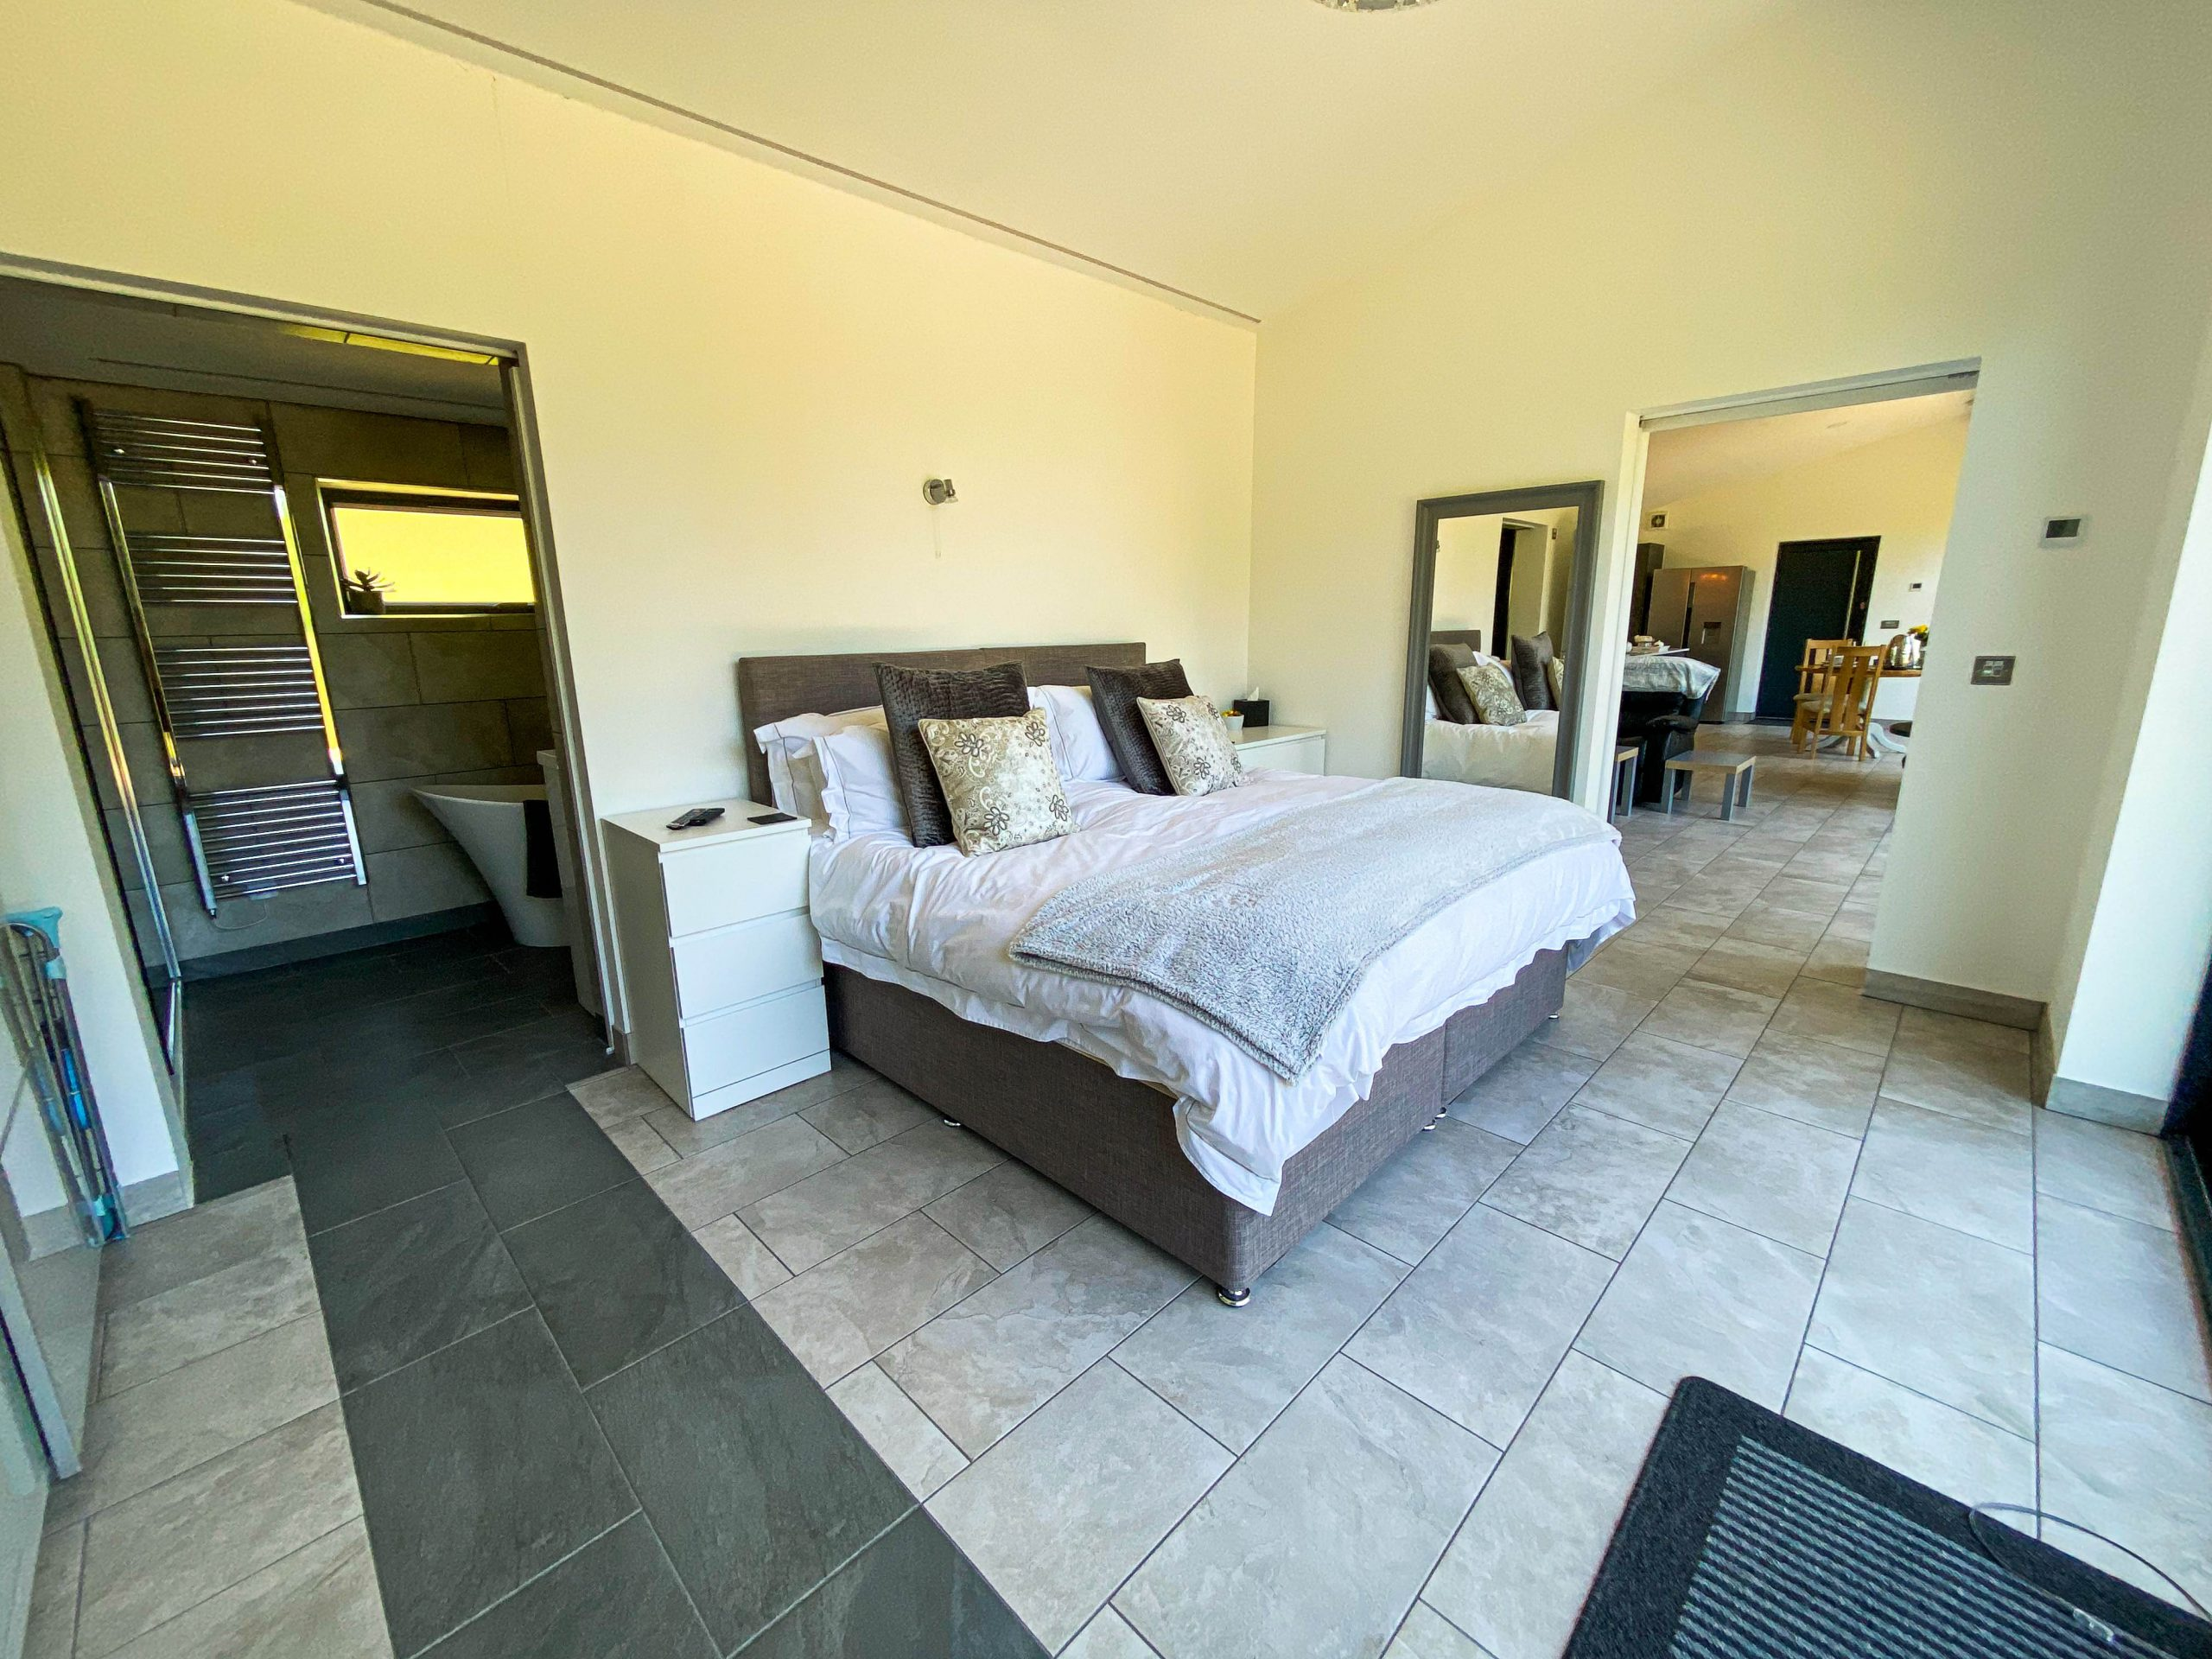 Relax in romantic surroundings in a superking bed